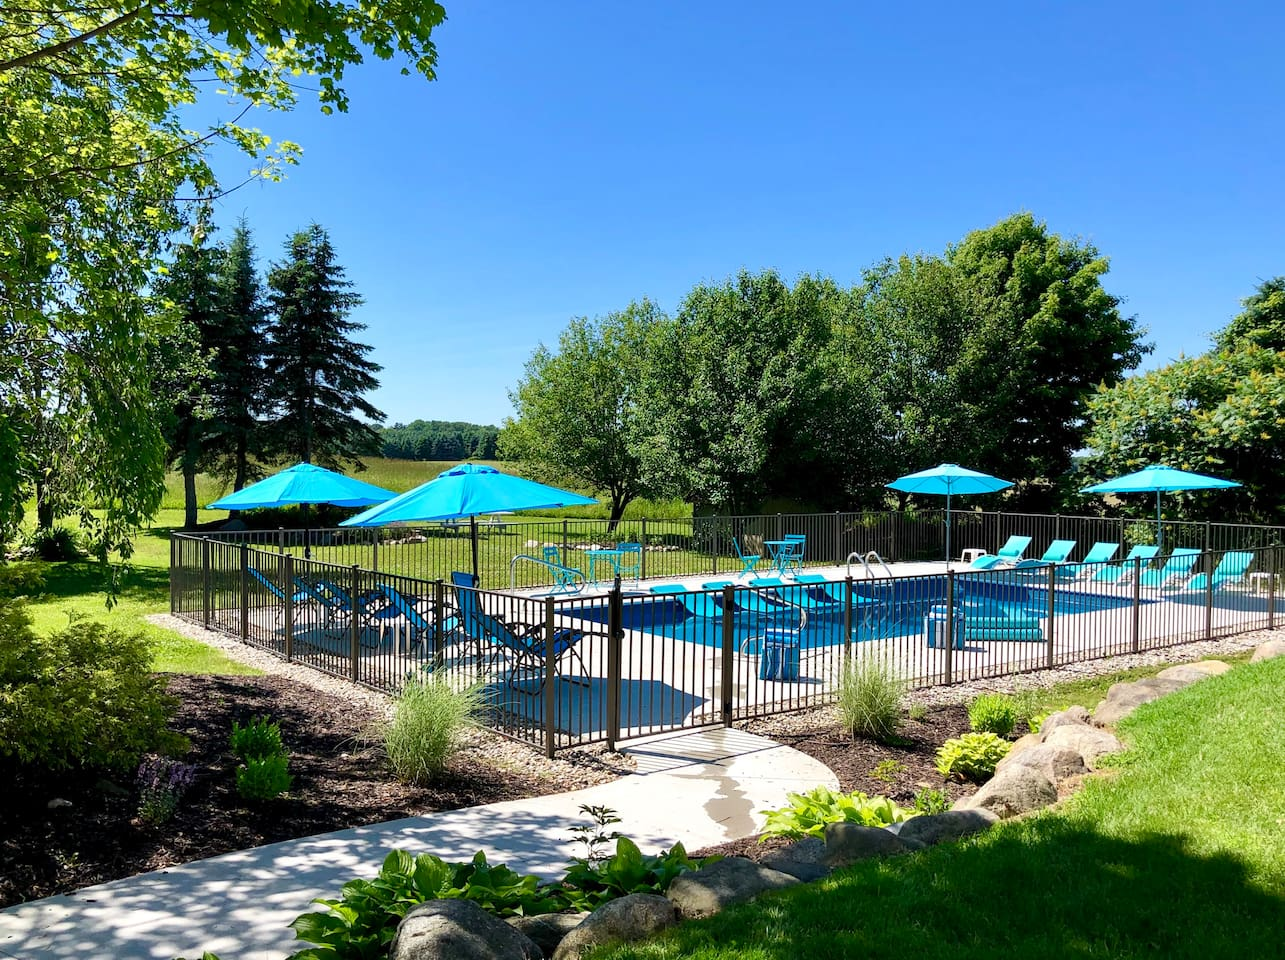 BACKYARD/POOL: Super-private 3 acres surrounded by farmland.  In-ground heated pool, deep&shallow ends, fence, self-locking security gate, umbrellas, rafts, pool loungers, deluxe noodles, pool/beach towels, white picnic table pictured in background.